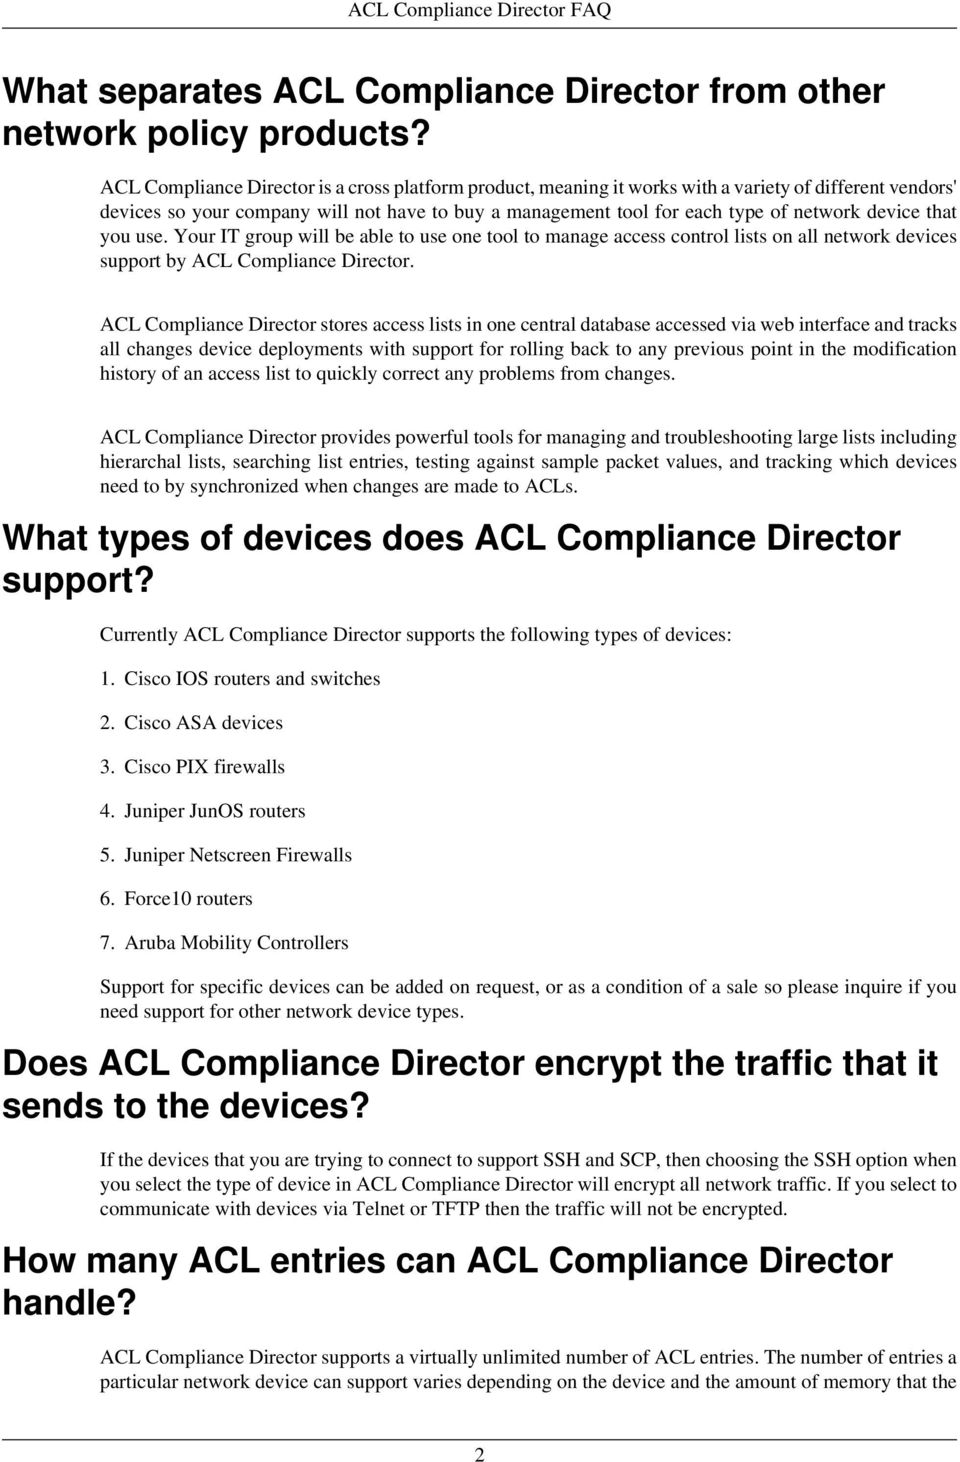 device that you use. Your IT group will be able to use one tool to manage access control lists on all network devices support by ACL Compliance Director.